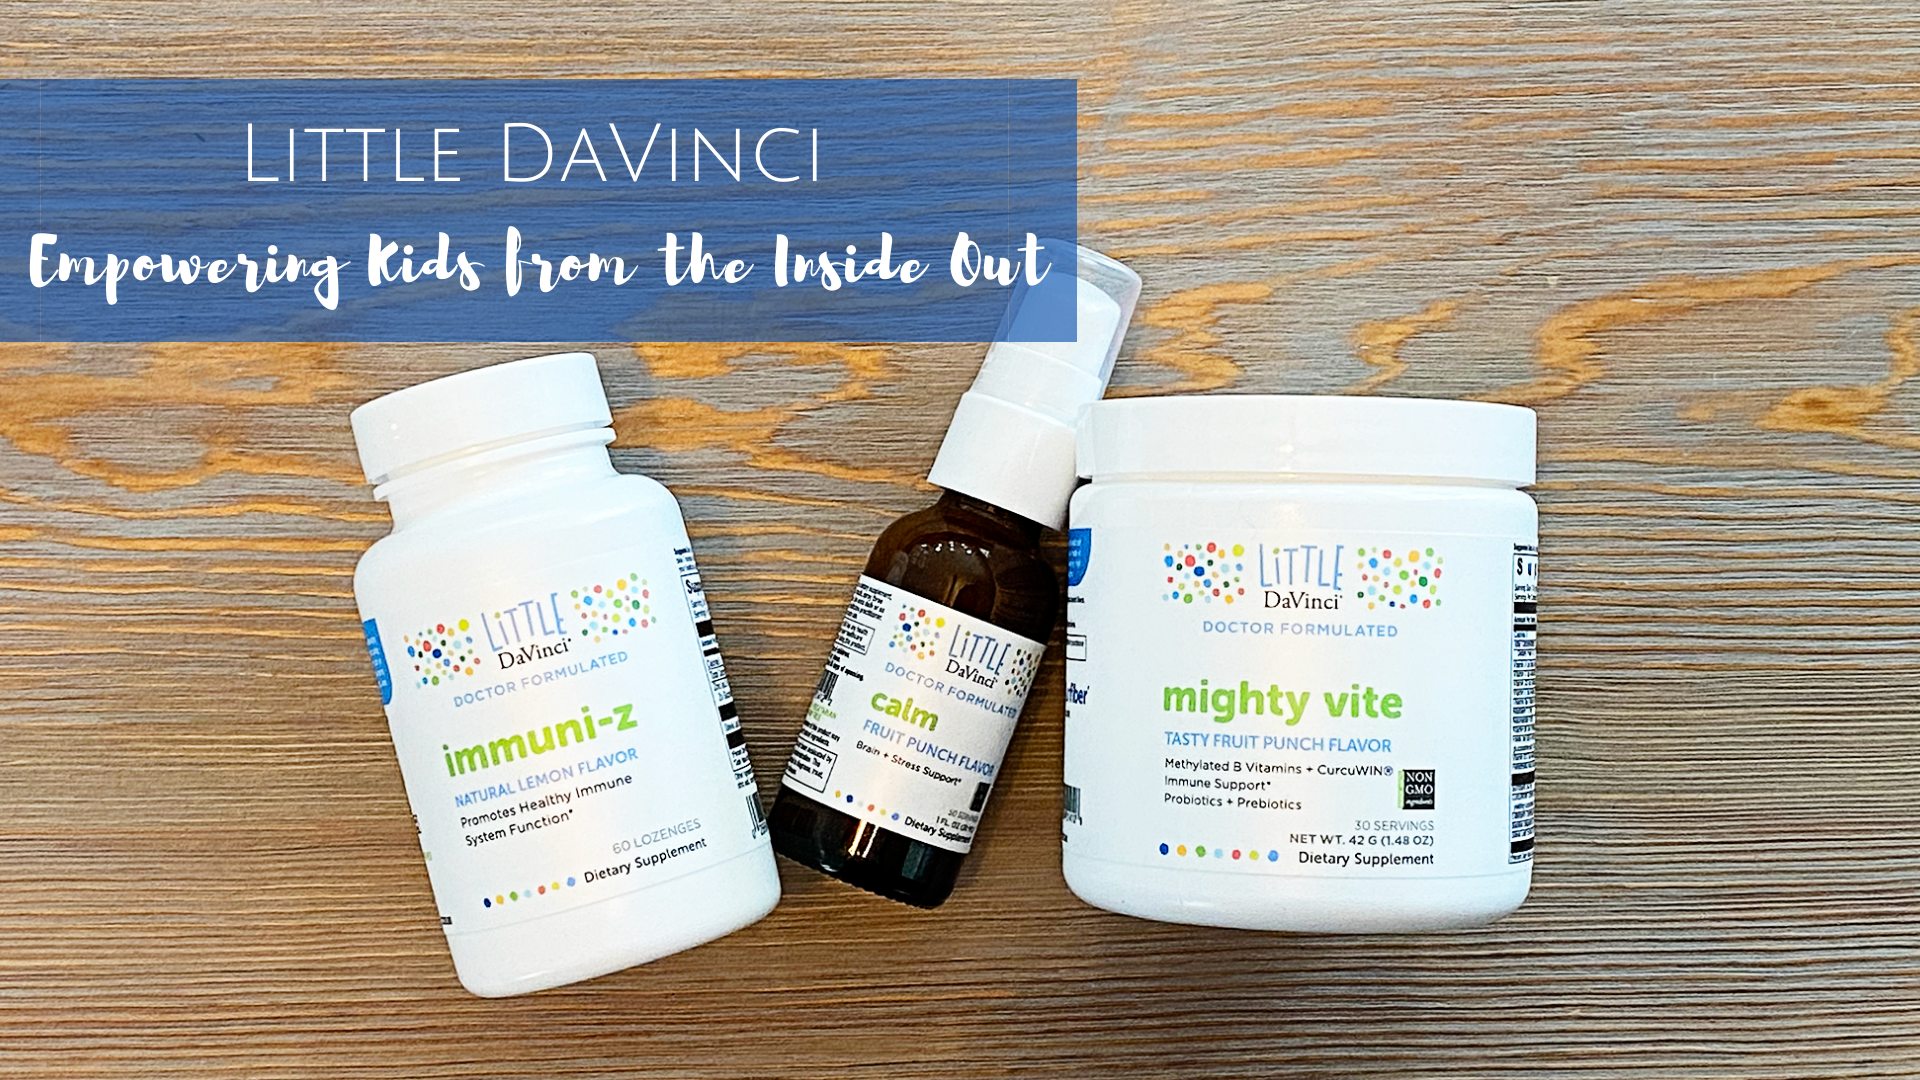 Little DaVinci supplements for kids.